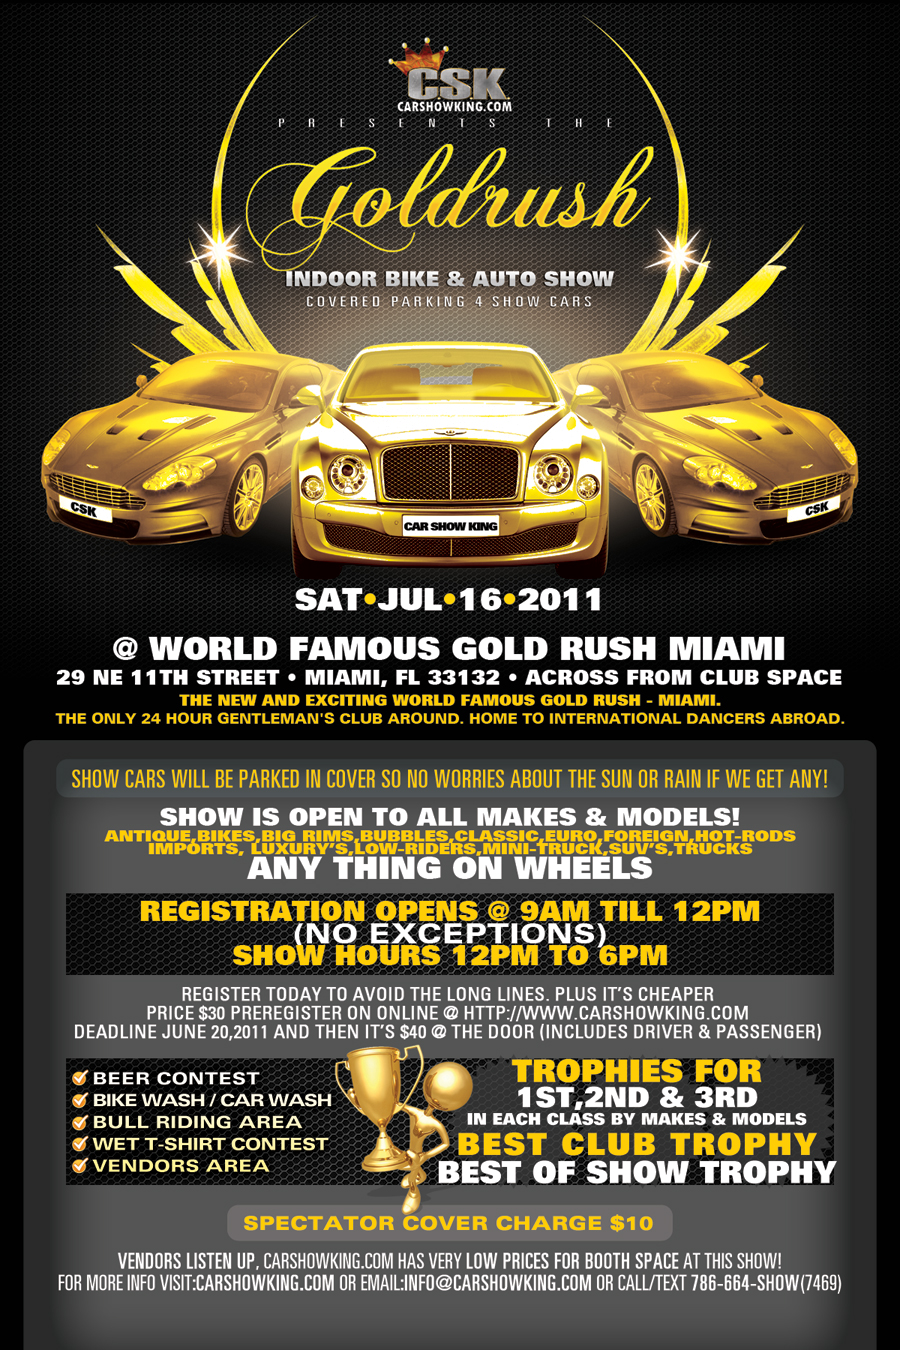 Gold Rush Car Show Promotional Flyer Design Tight Designs - Car and bike show flyer template